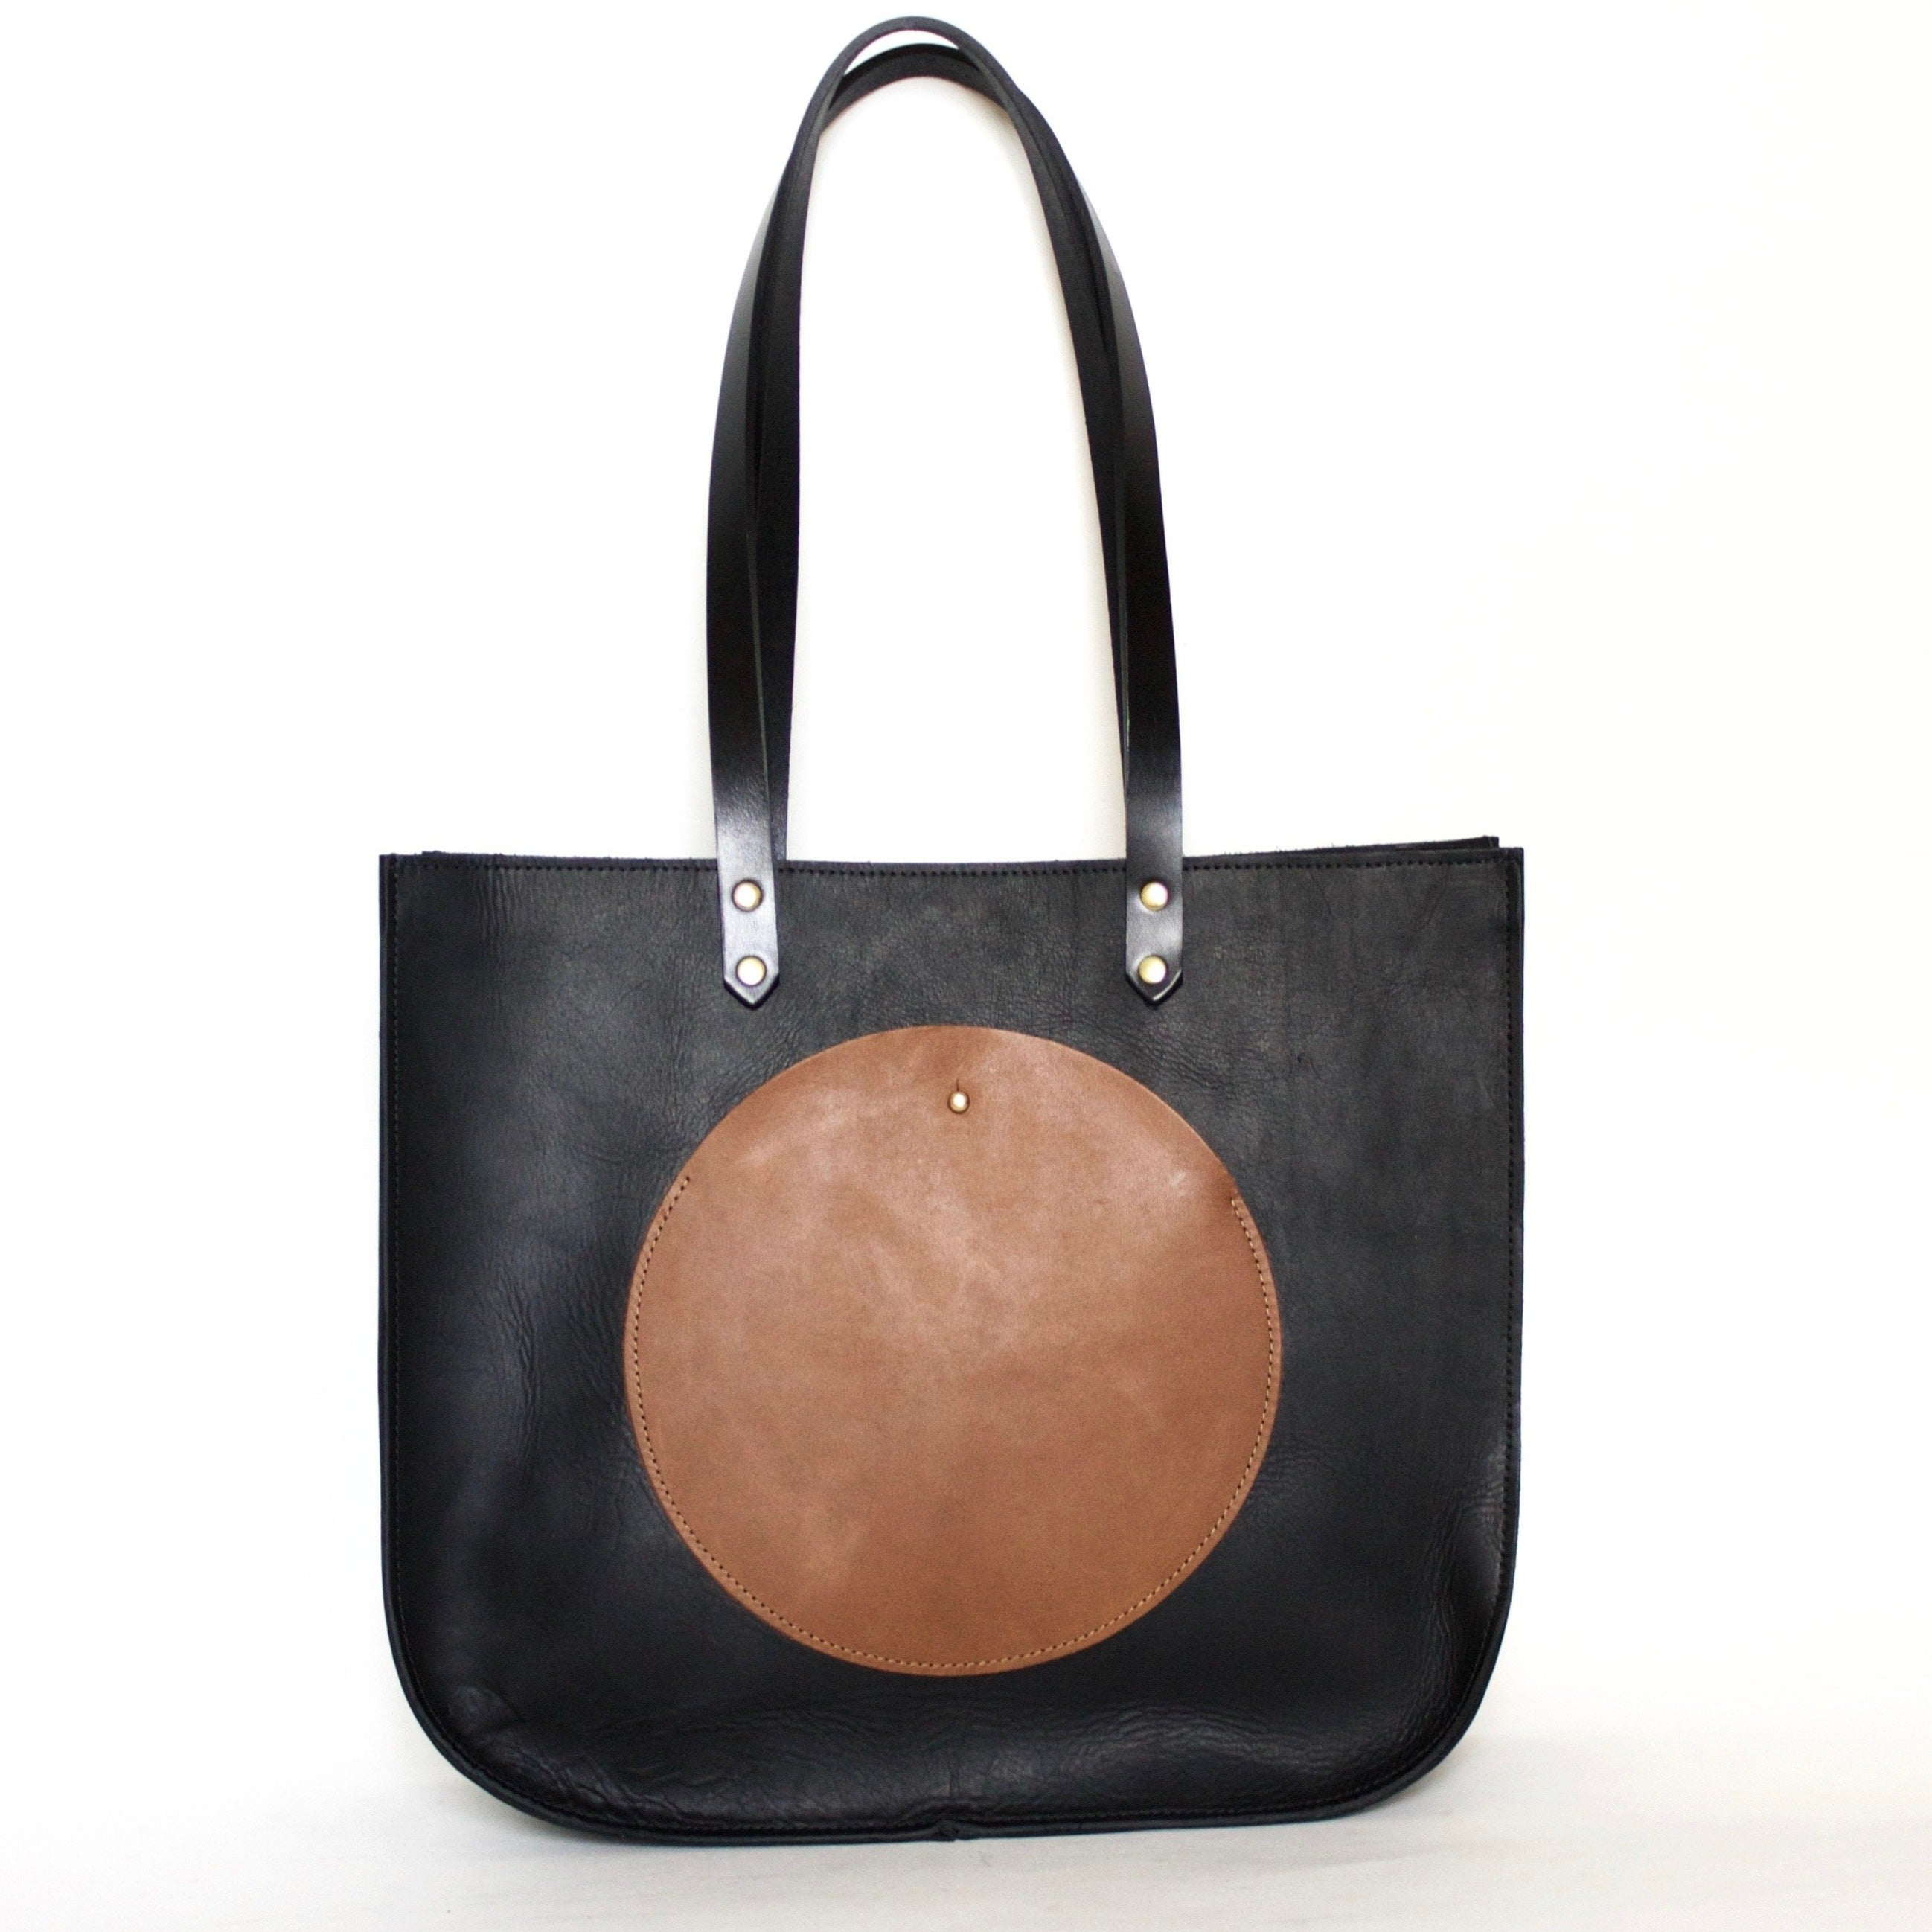 Neva Opet -Atlanta Leather Bags